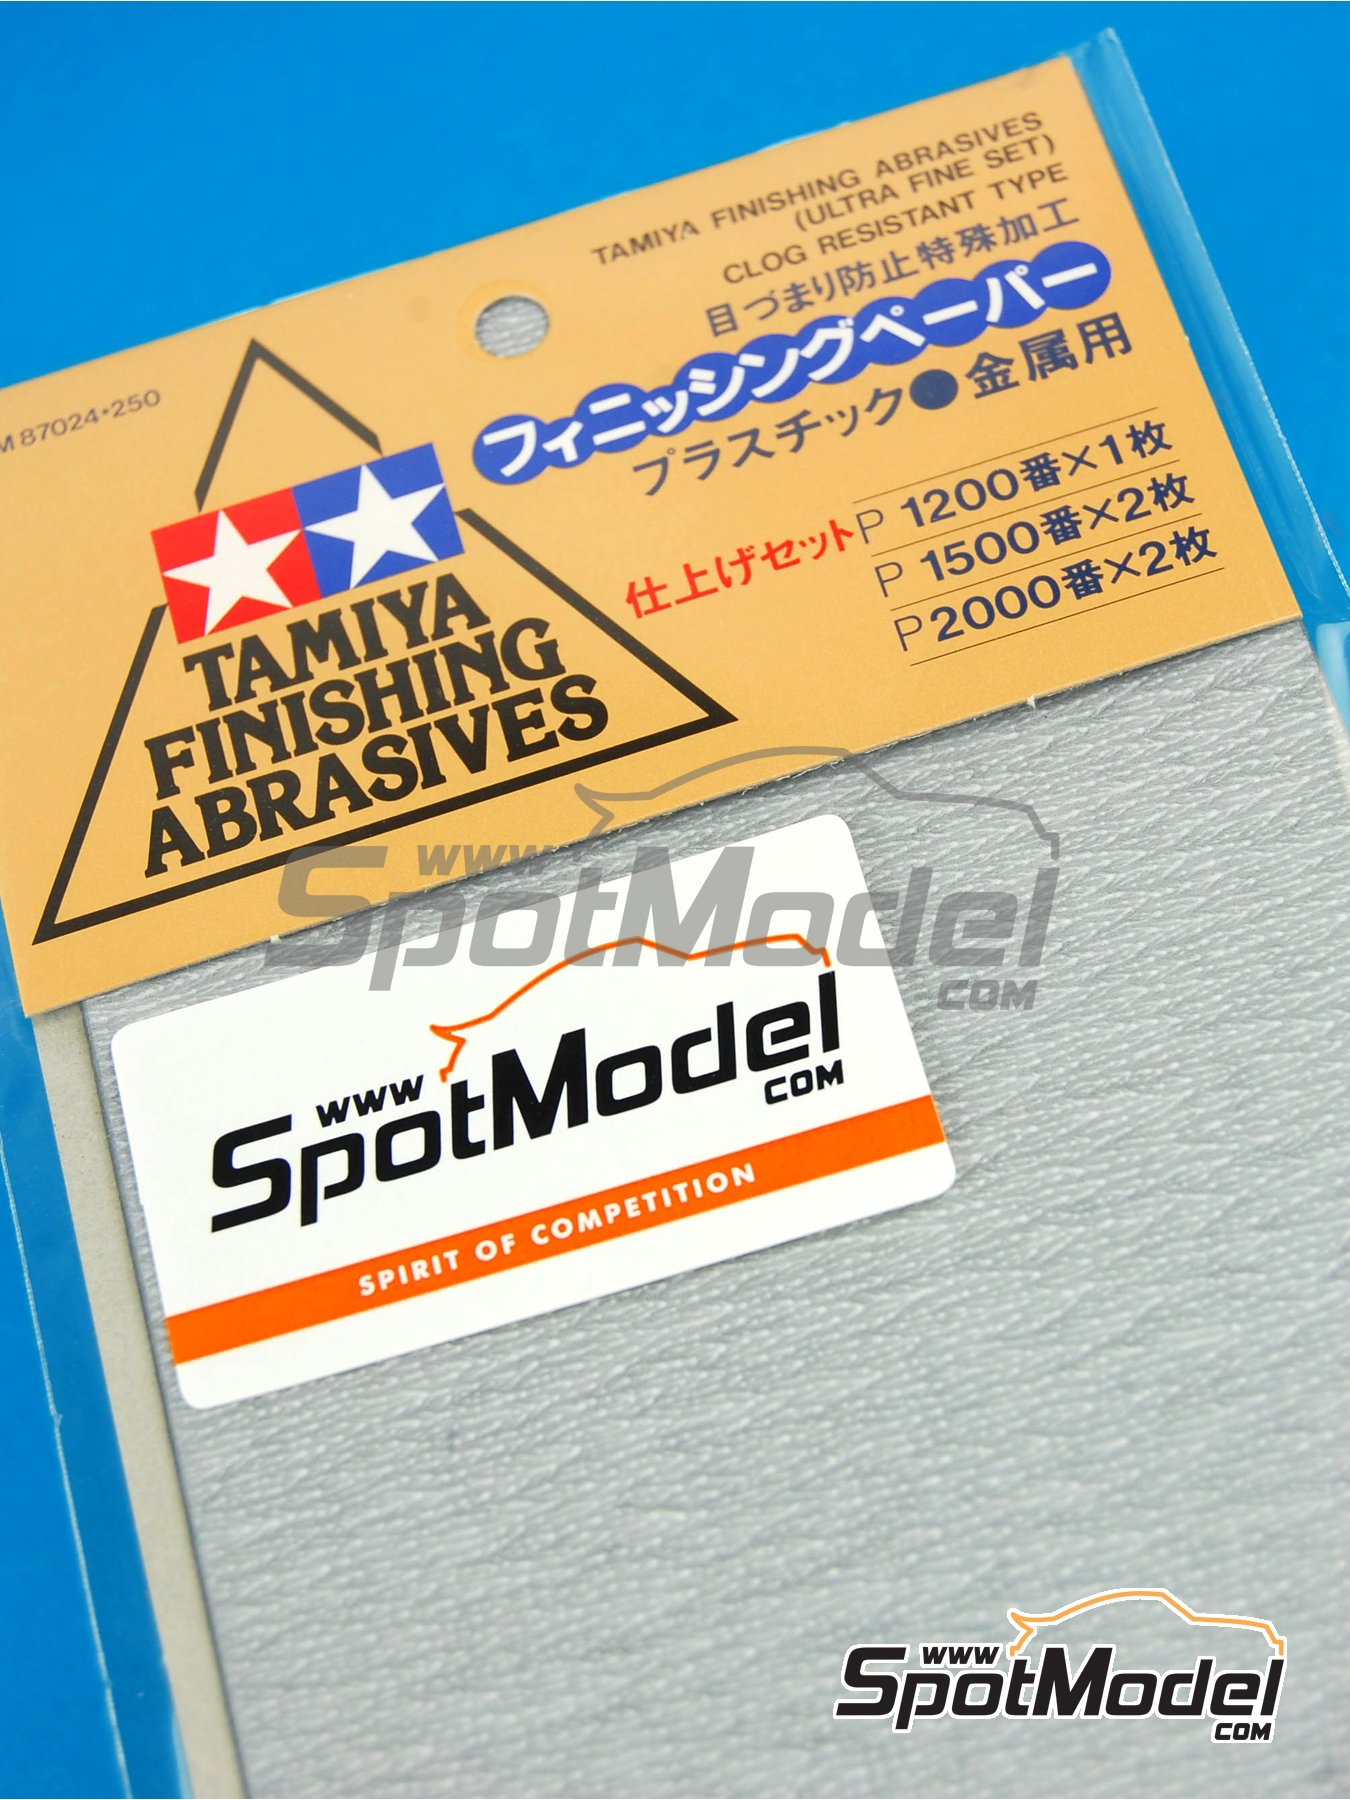 Finishing abrasives - Ultra fine set - 1 x 1200 - 2 x 1500 - 2 x 2000 | Sandpaper manufactured by Tamiya (ref. TAM87024) image